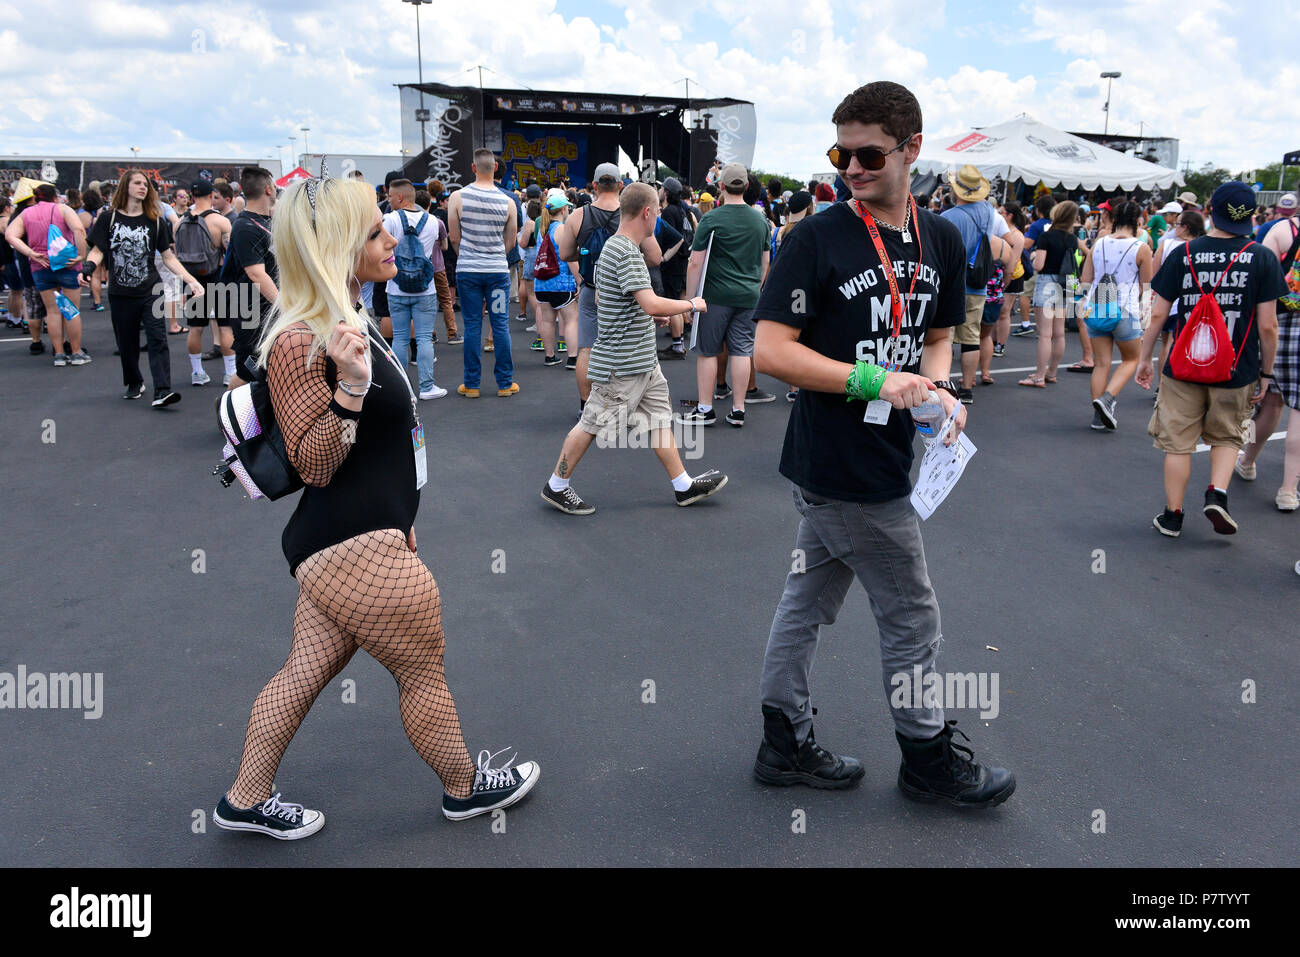 San Antonio, USA. 7th July 2018. Cody Huber turns to look at Jenna Bennett during the Vans Warped Tour June 7, 2018 in San Antonio, Texas. Credit: Robin Jerstad/Alamy Live News - Stock Image